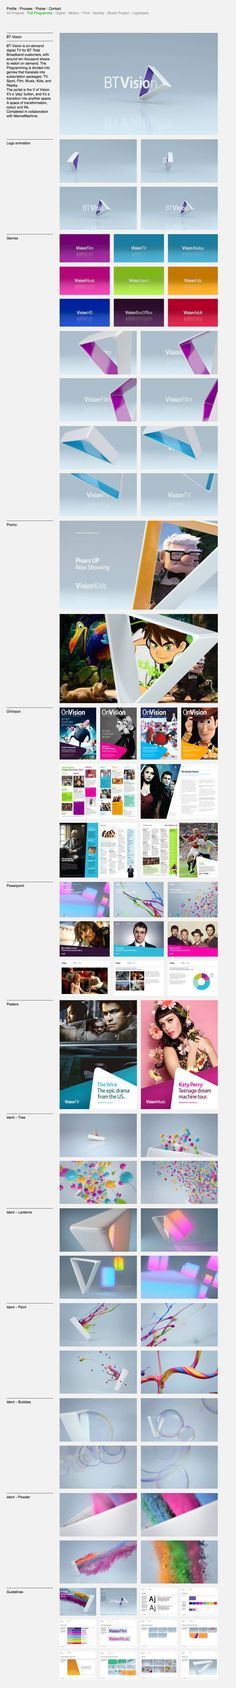 Corporate Presentation / Color / Framing / Photography Integration /// BT Vision branding by Proud Creative